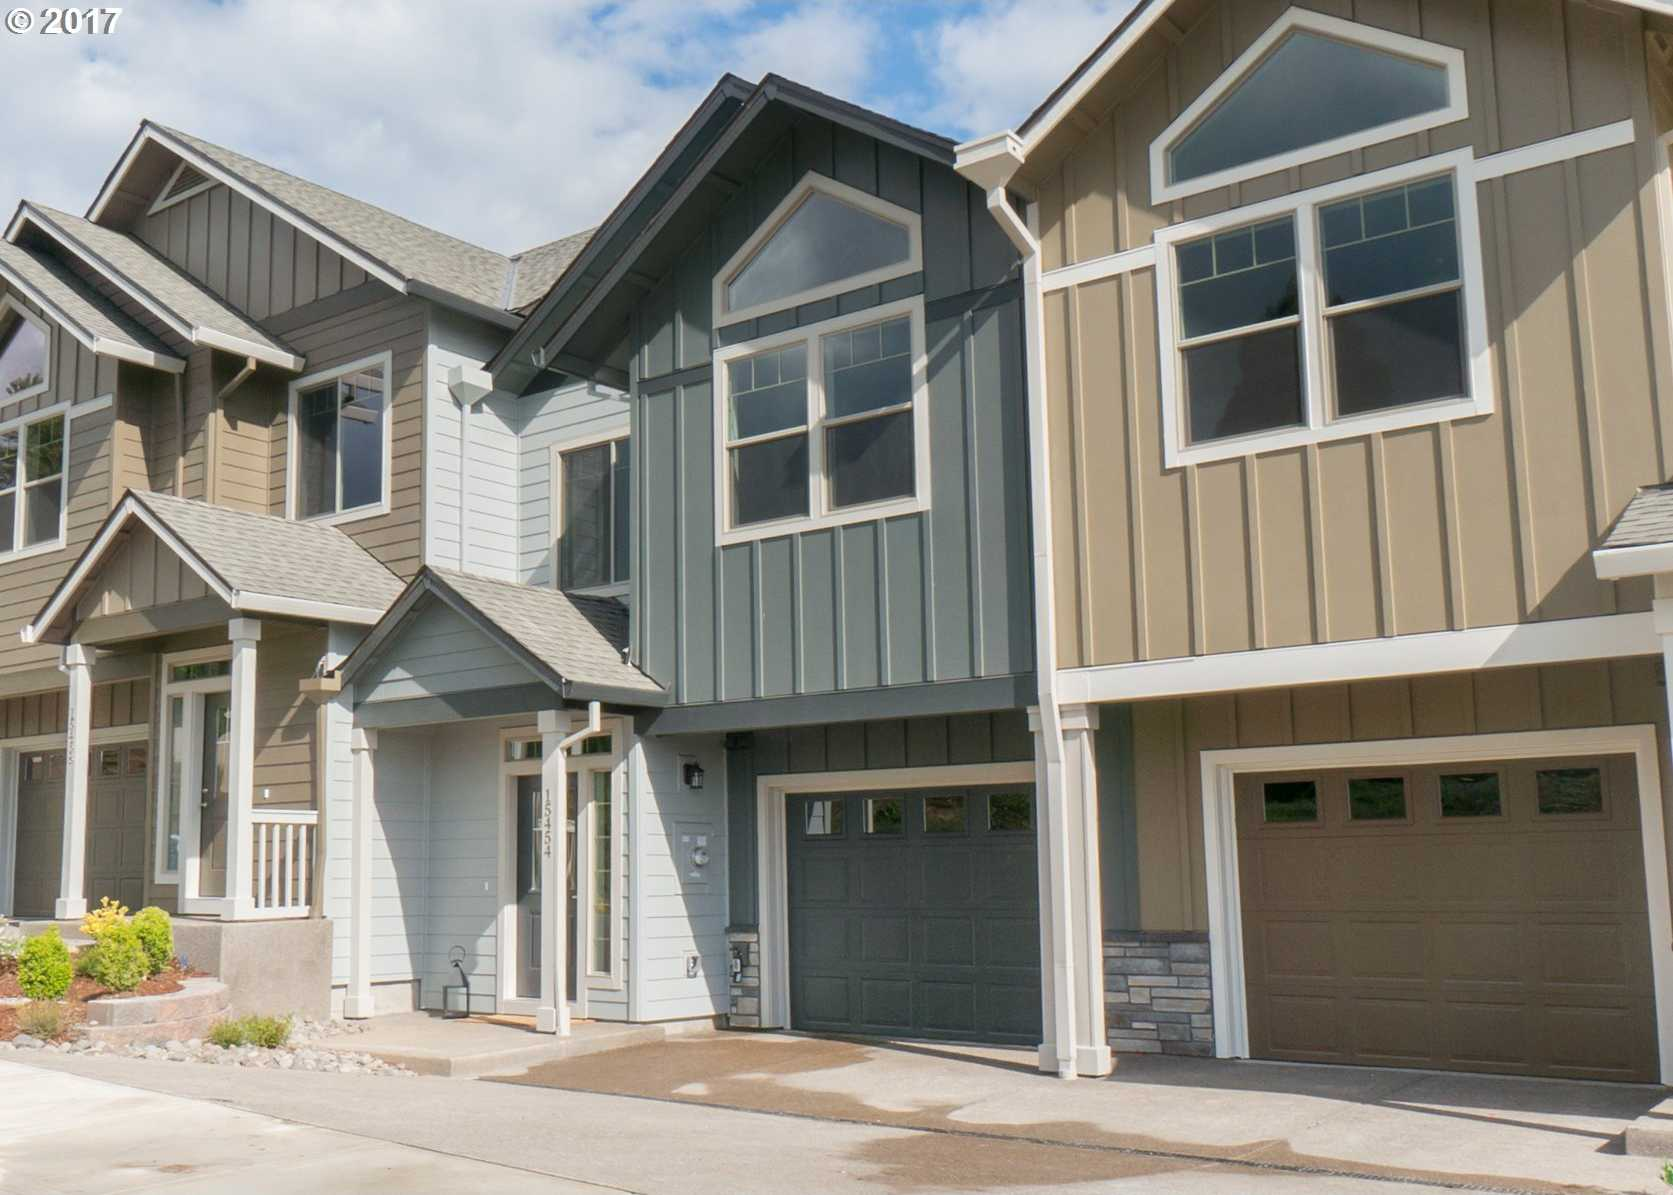 $349,900 - 3Br/3Ba -  for Sale in Crest View Townhomes, Happy Valley